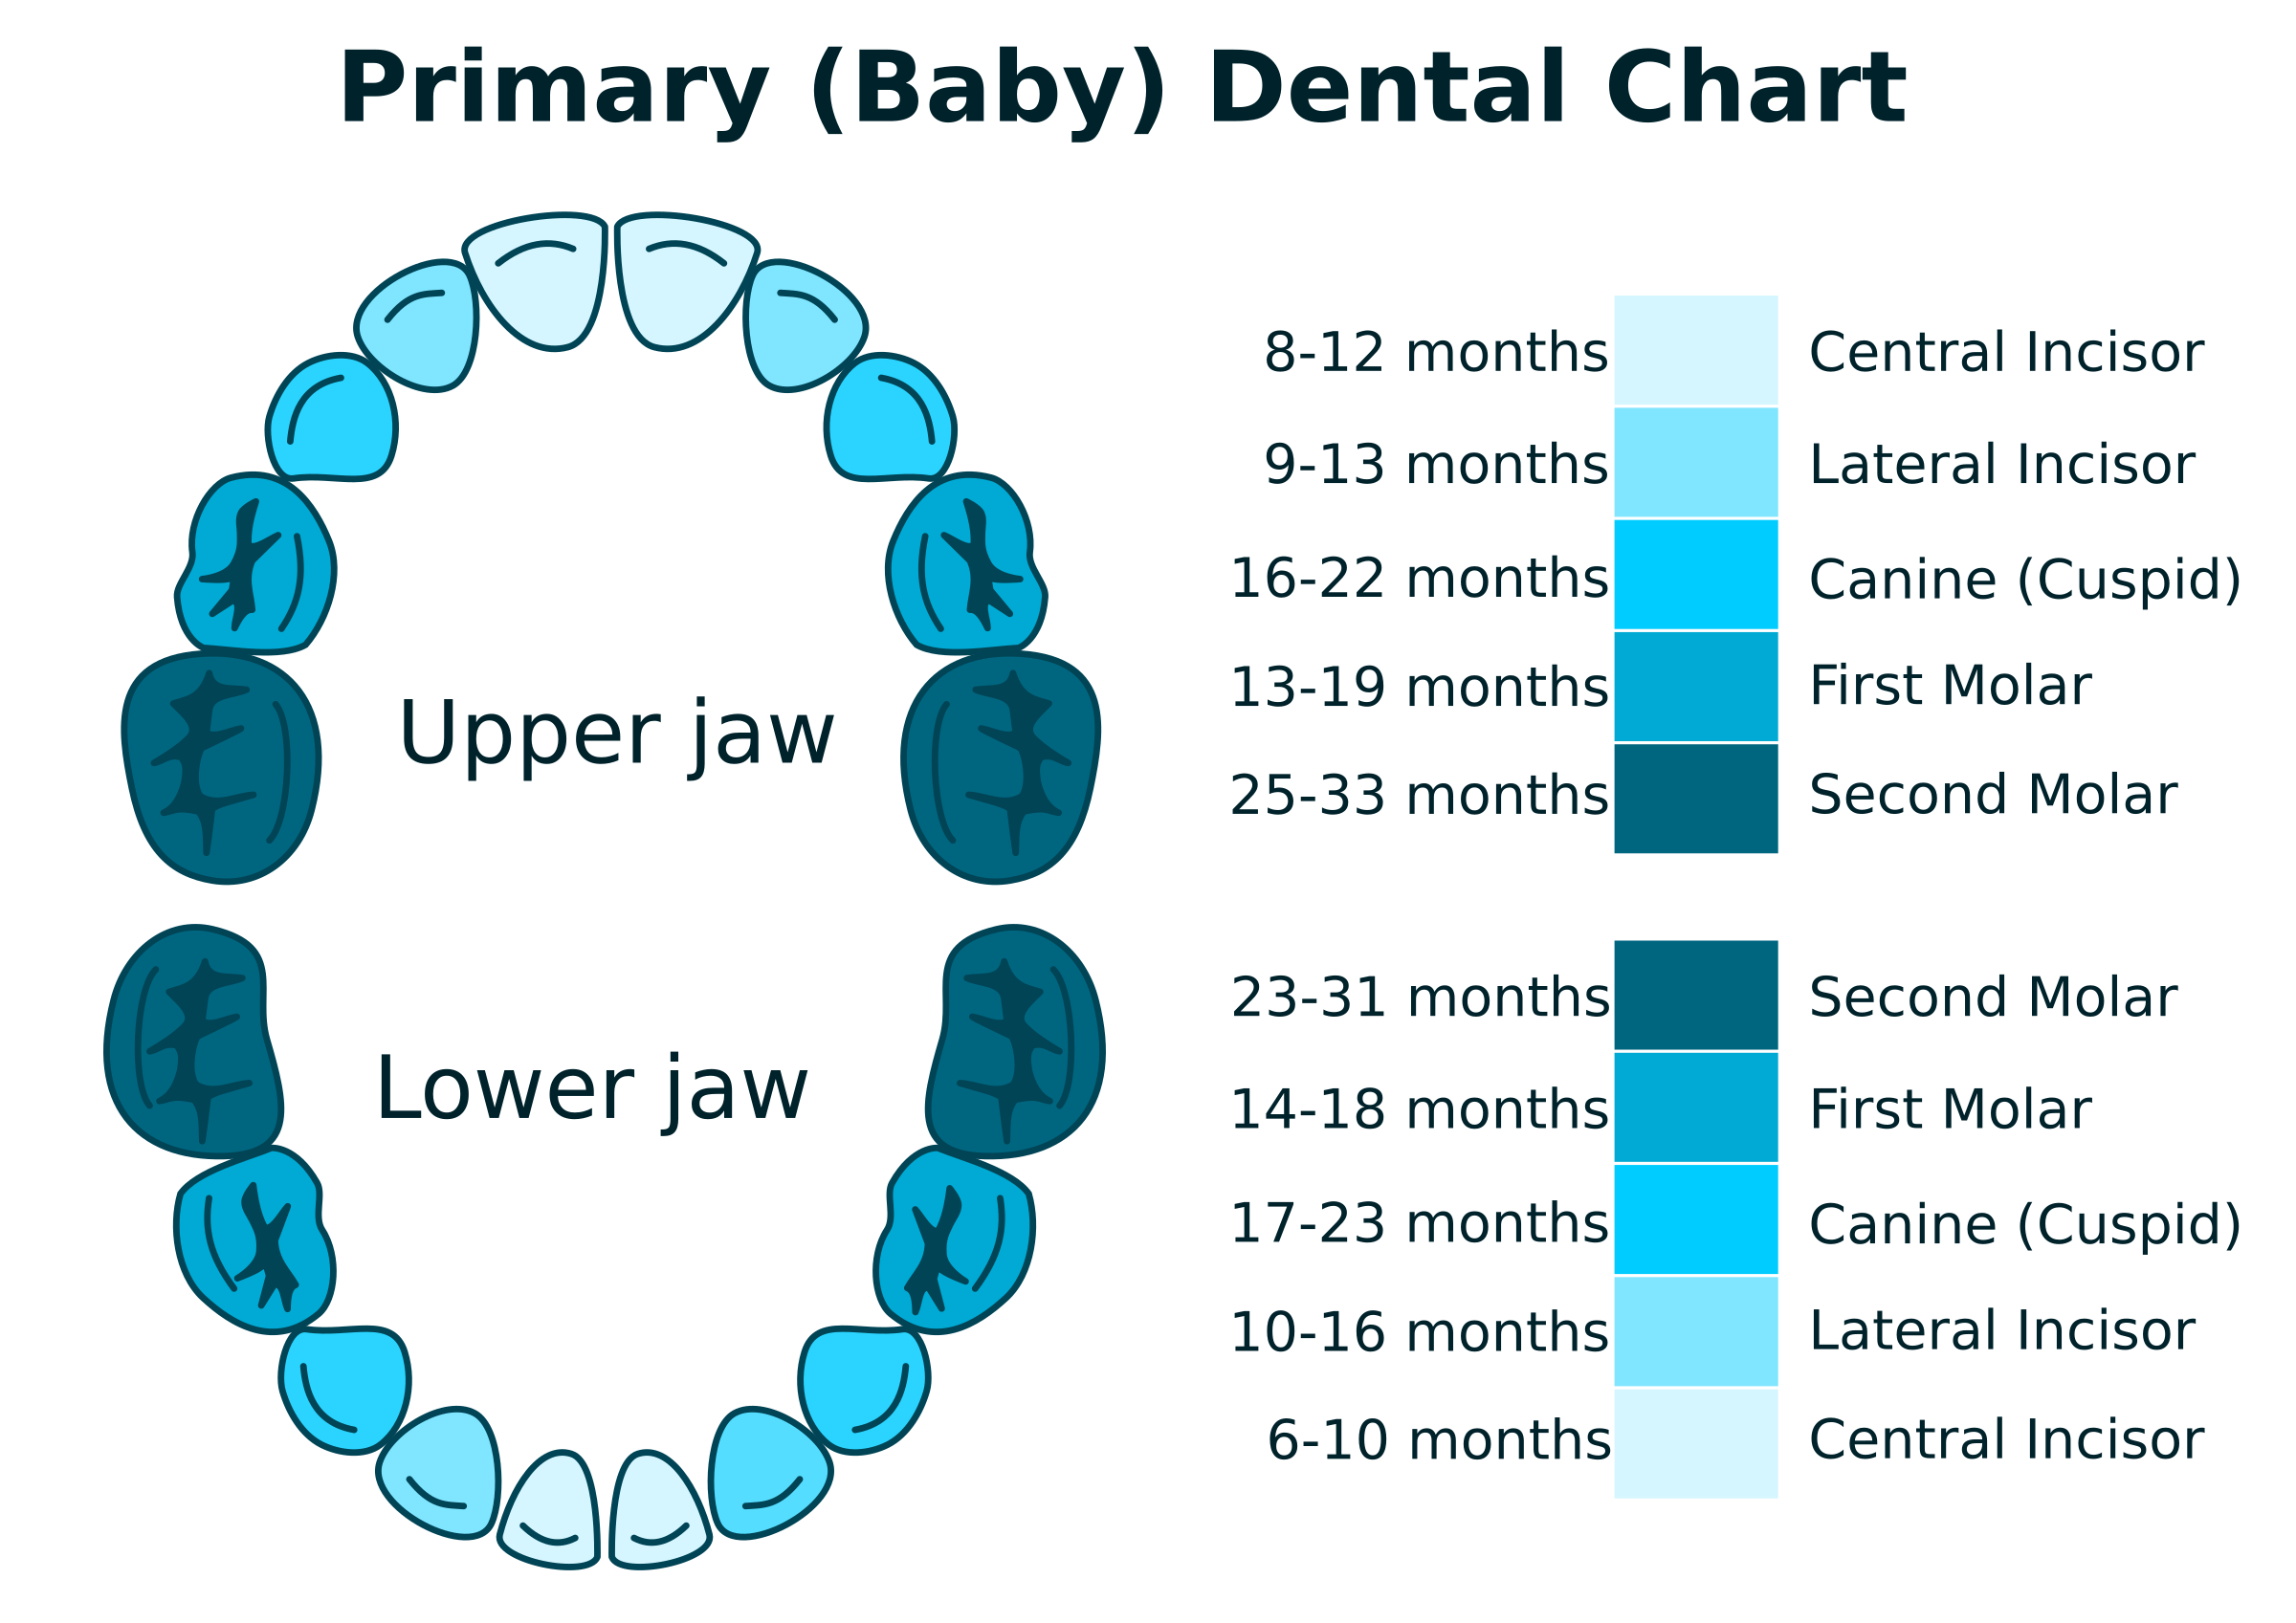 Primary Dental Chart by Susa